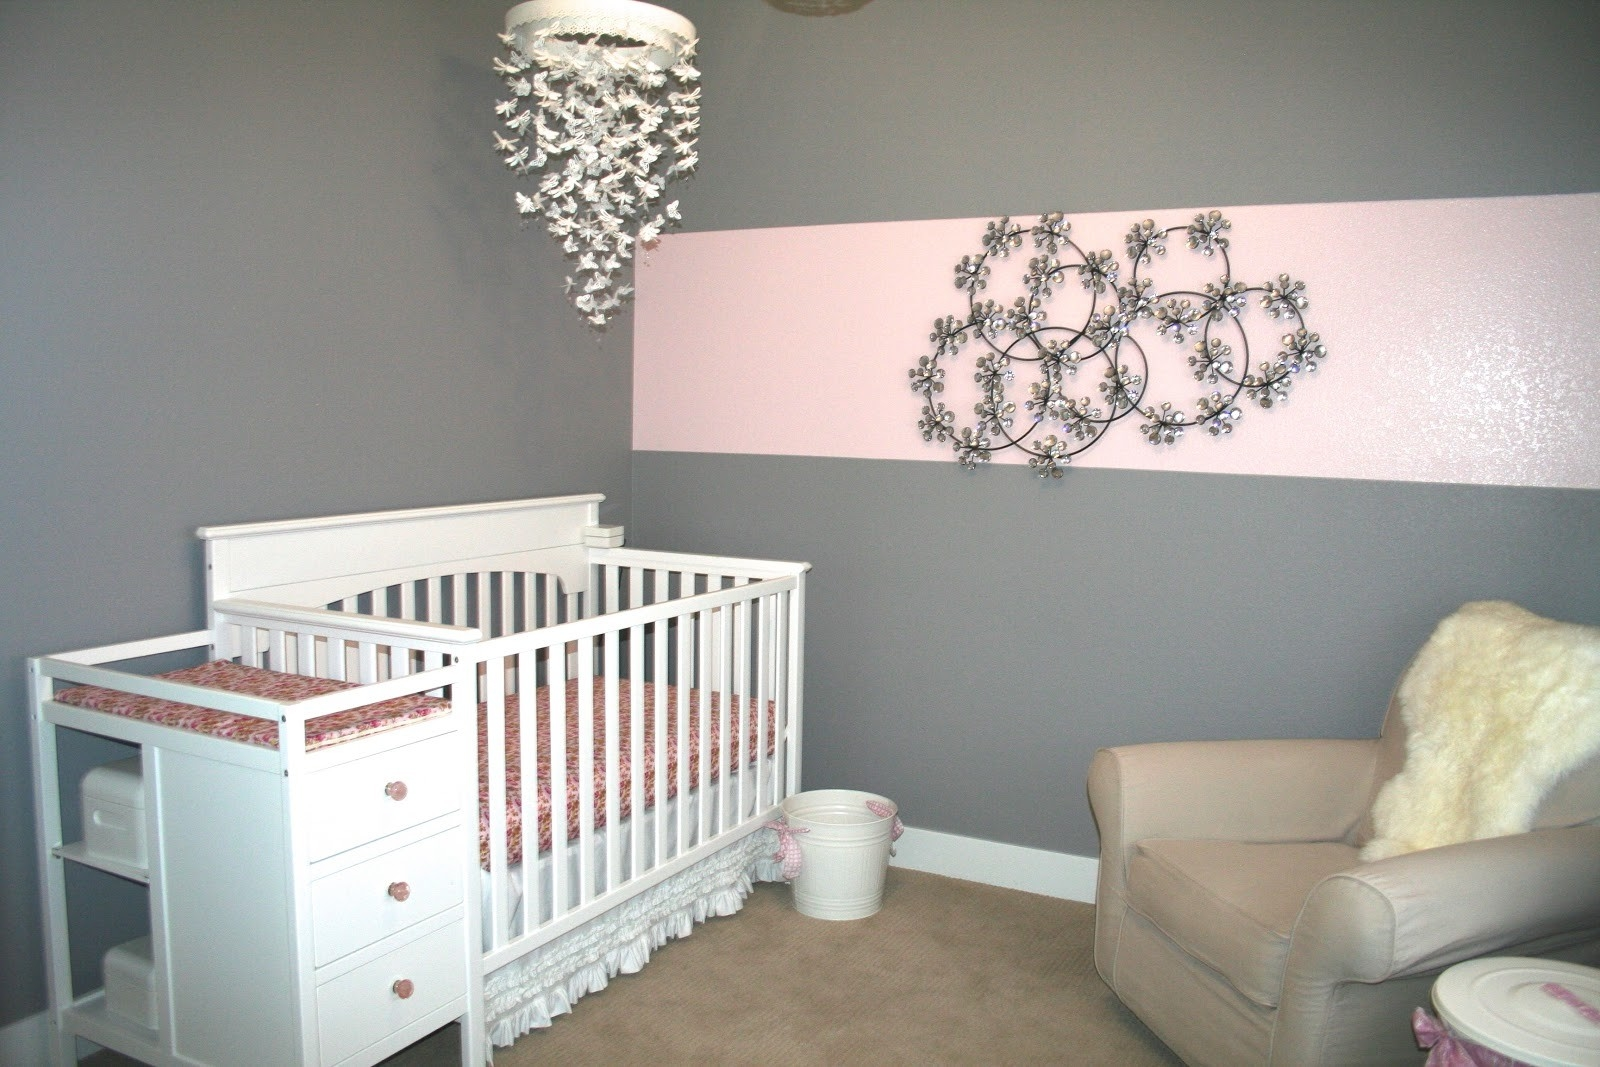 Crystal Chandeliers For Nursery Lamp World Pertaining To Crystal Chandeliers For Baby Girl Room (View 8 of 25)